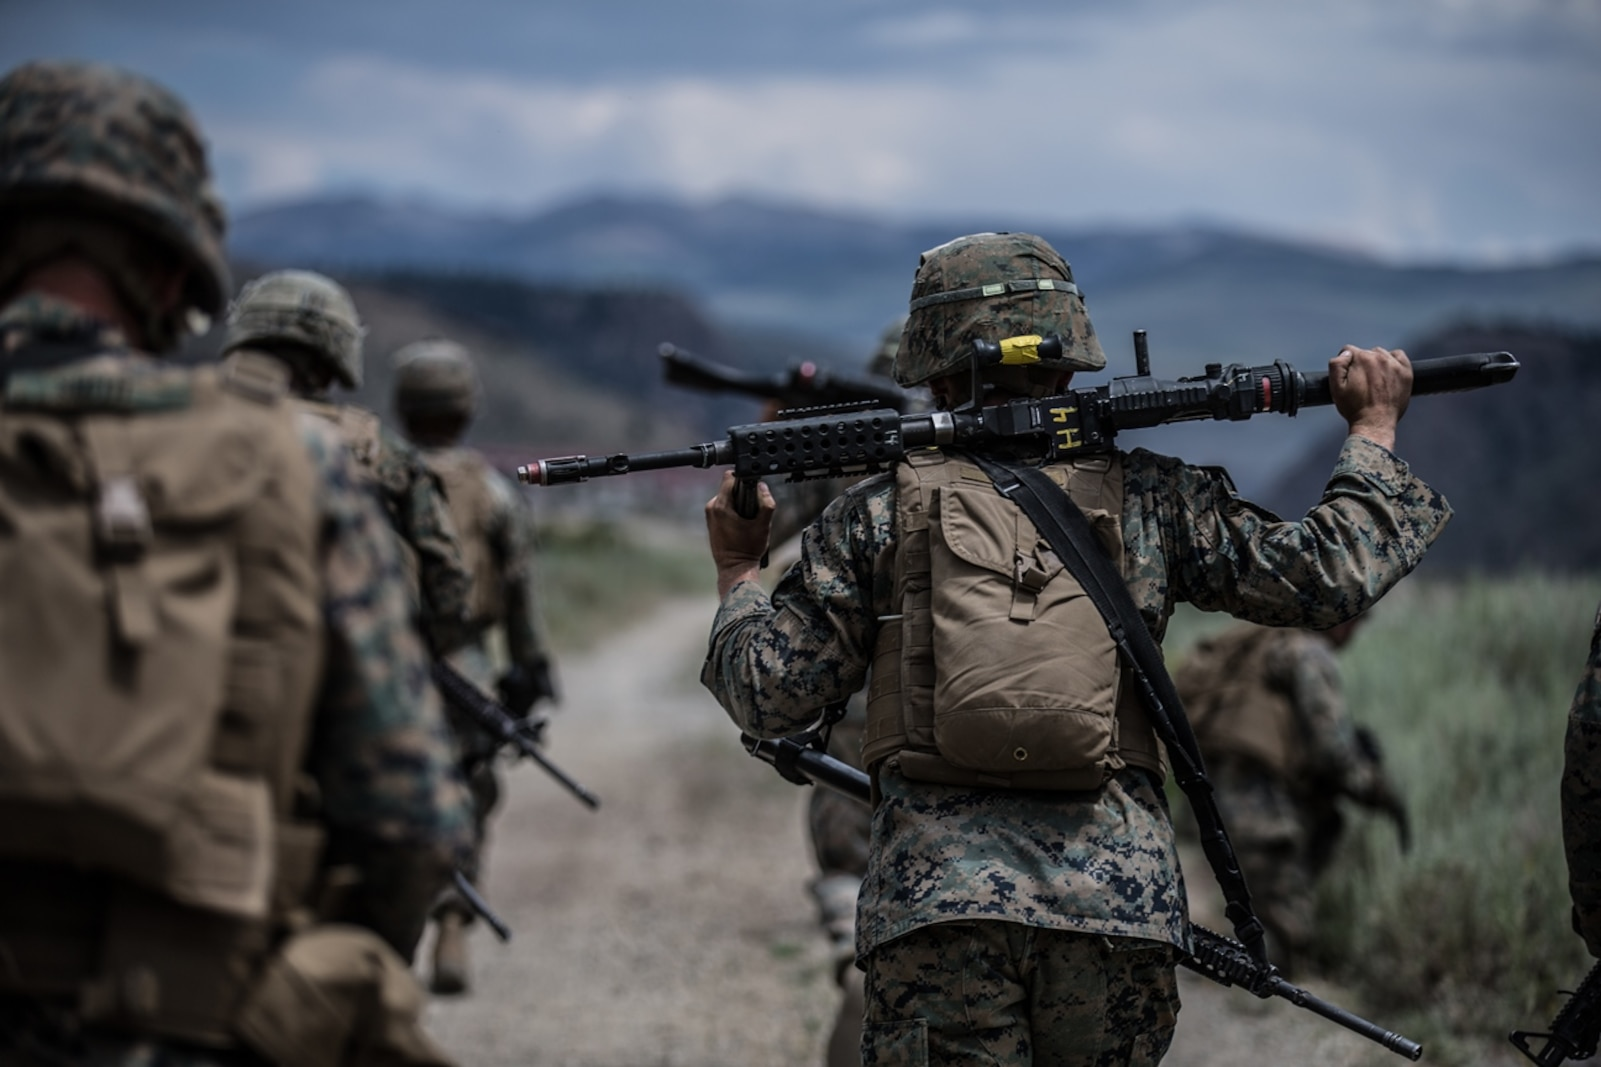 BRIDGEPORT, Calif. - U.S. Marines with Combat Logistics Battalion 5, Combat Logistics Regiment 1, 1st Marine Logistics Group, hike towards a target point to conduct a combat physical training session during Mountain Training Exercise 4-17 at Marine Corps Mountain Warfare Training Center in Aug. 2, 2017. During the Mountain Warfare Training Marines are required to complete multiple hikes, these are meant to keep Marines in peak physical condition during the exercise. (U.S. Marine Corps photo by Lance Cpl. Timothy Shoemaker)